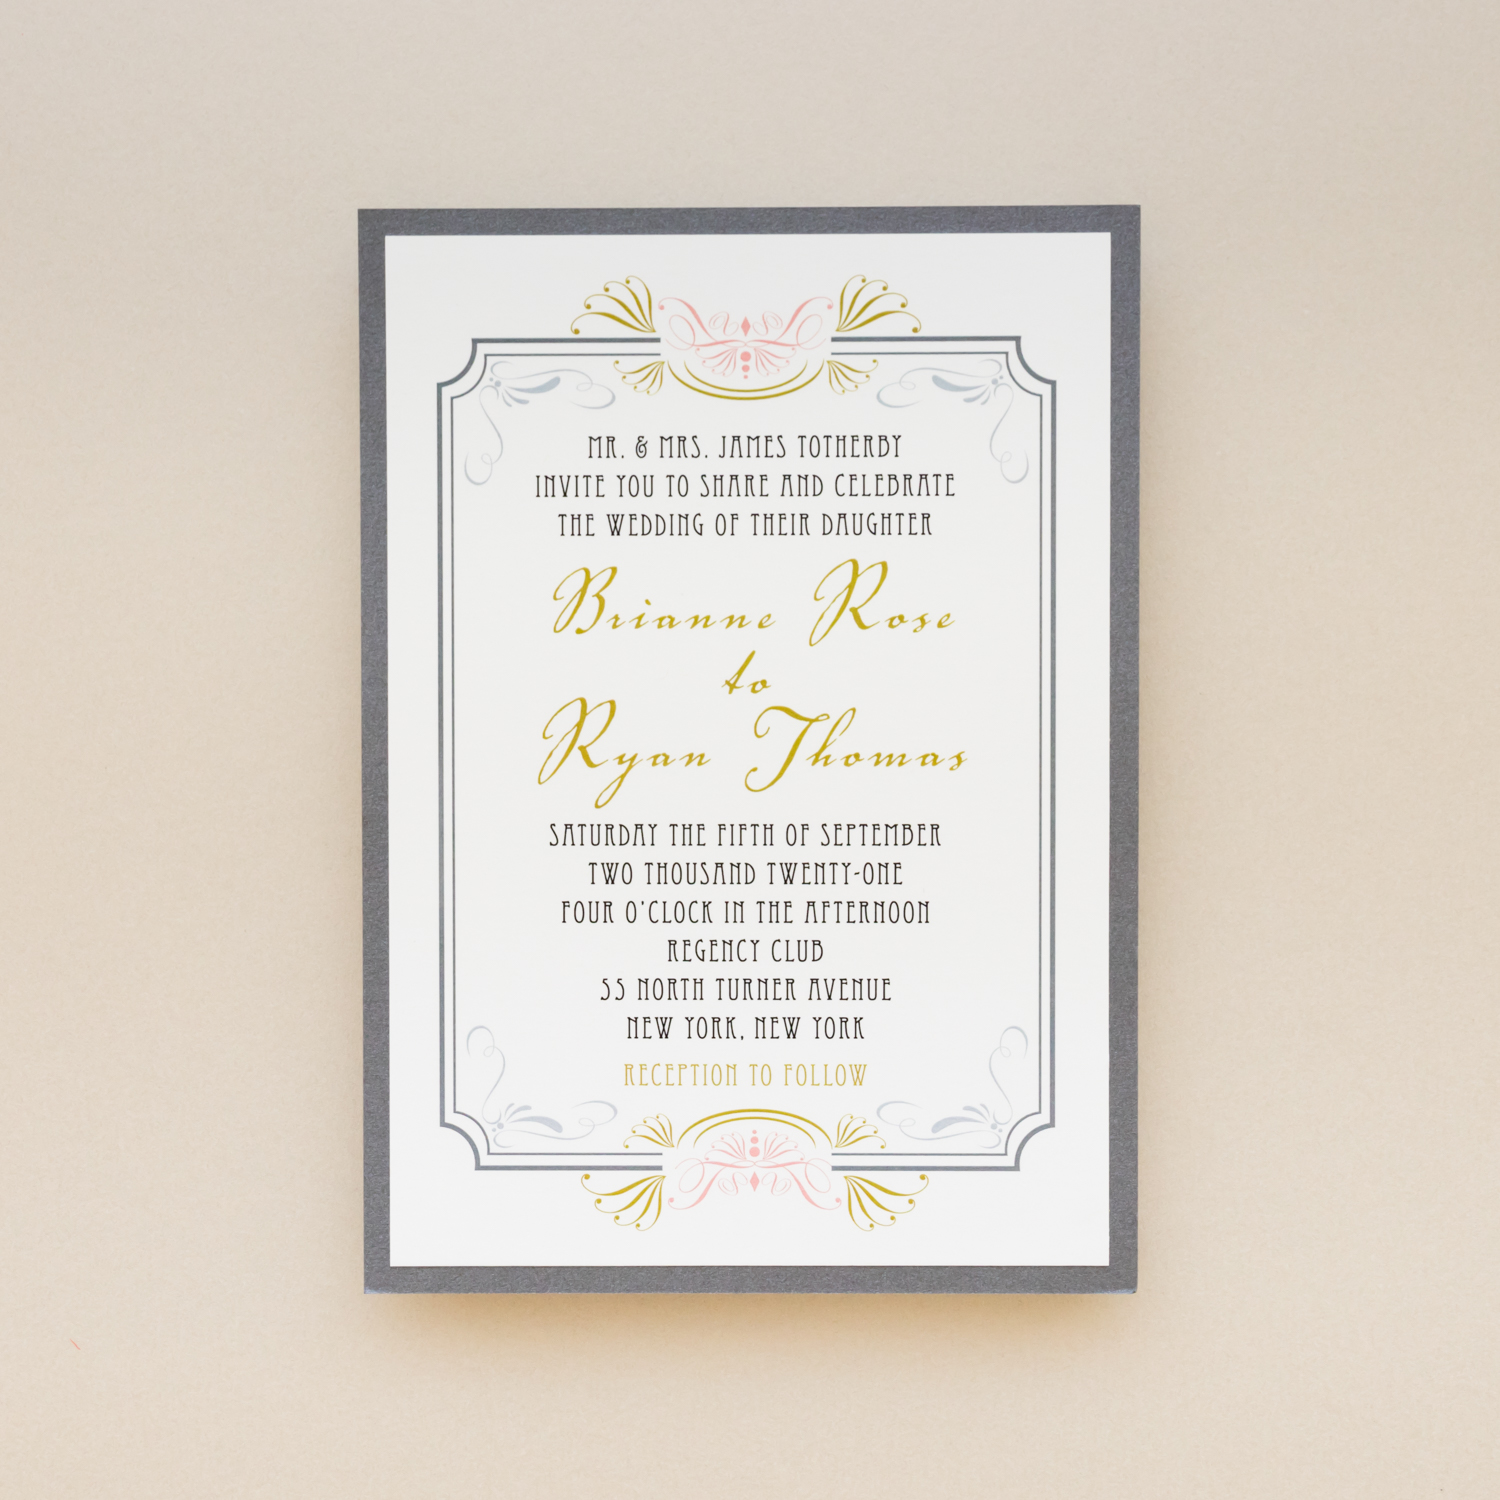 Art Deco Wedding Invitations.Art Deco Wedding Invitations Hollywood Gatsby Inspired Beacon Lane